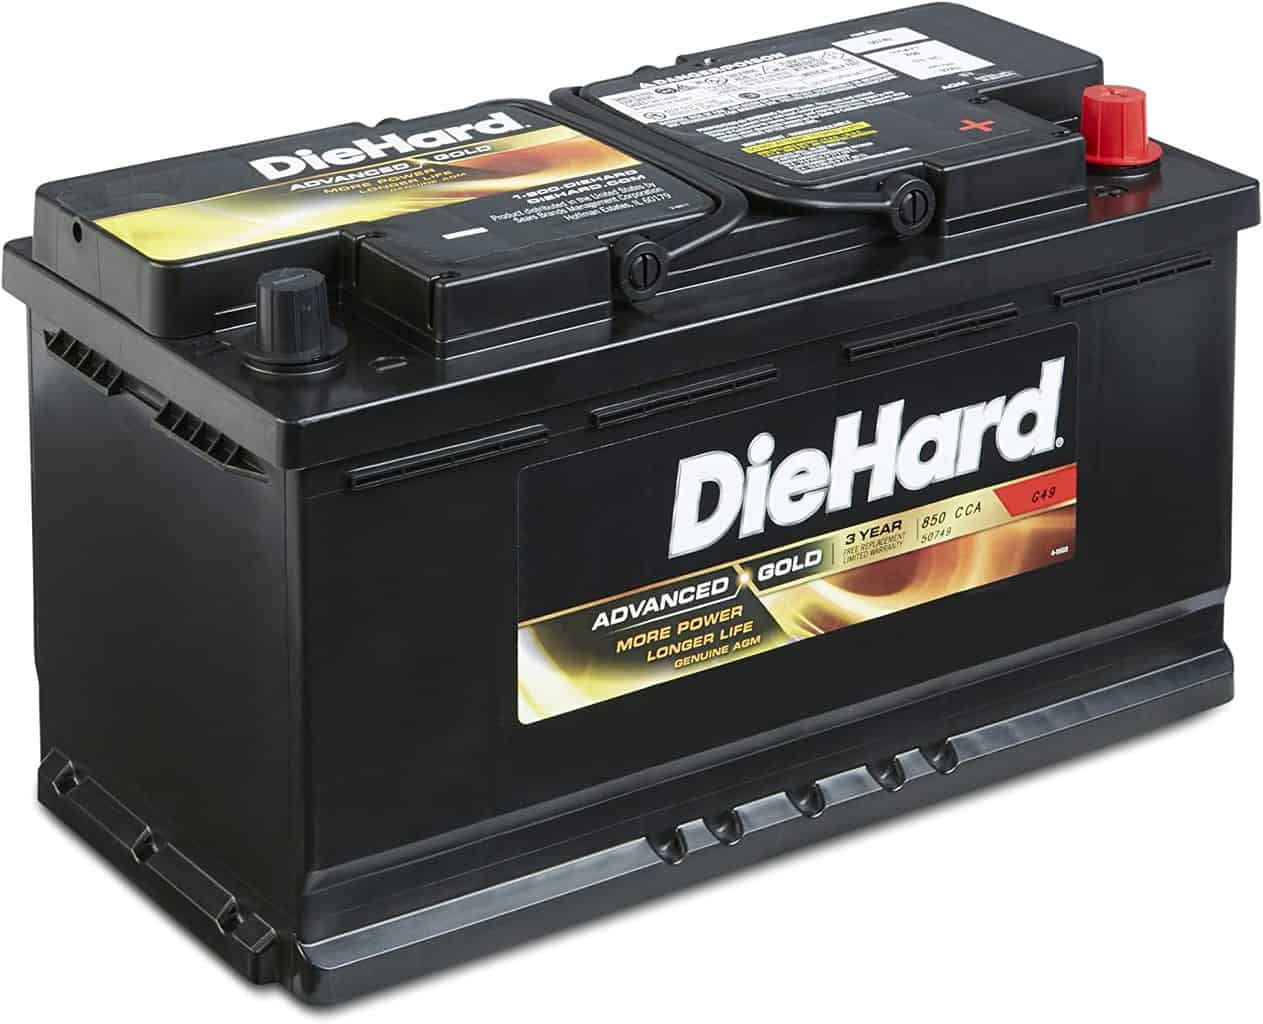 DieHard 38217 Advanced Gold Battery